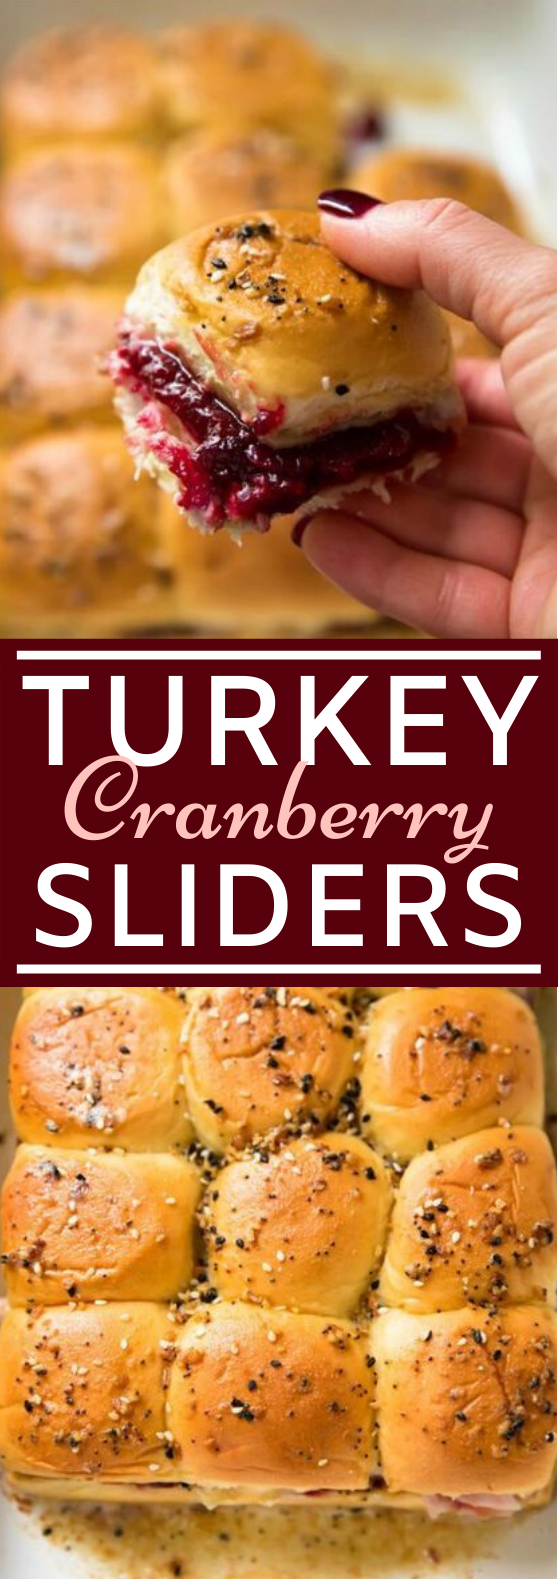 Turkey Cranberry Sliders #dinner #recipes #party #food #appetizers